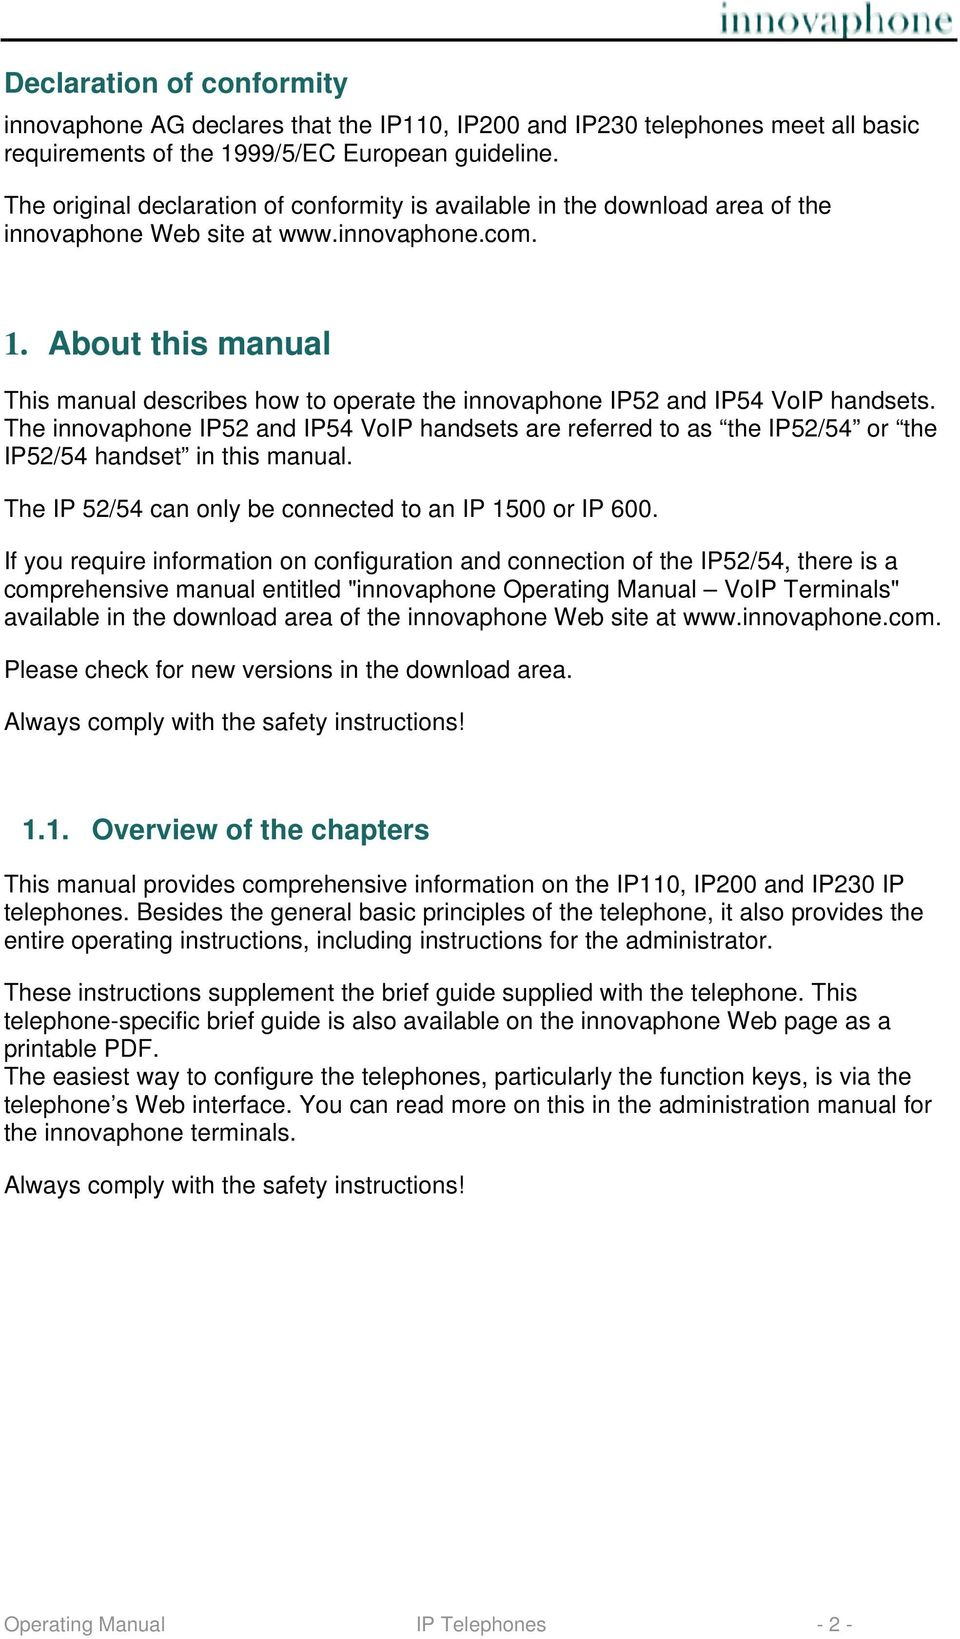 About this manual This manual describes how to operate the innovaphone IP52 and IP54 VoIP handsets.